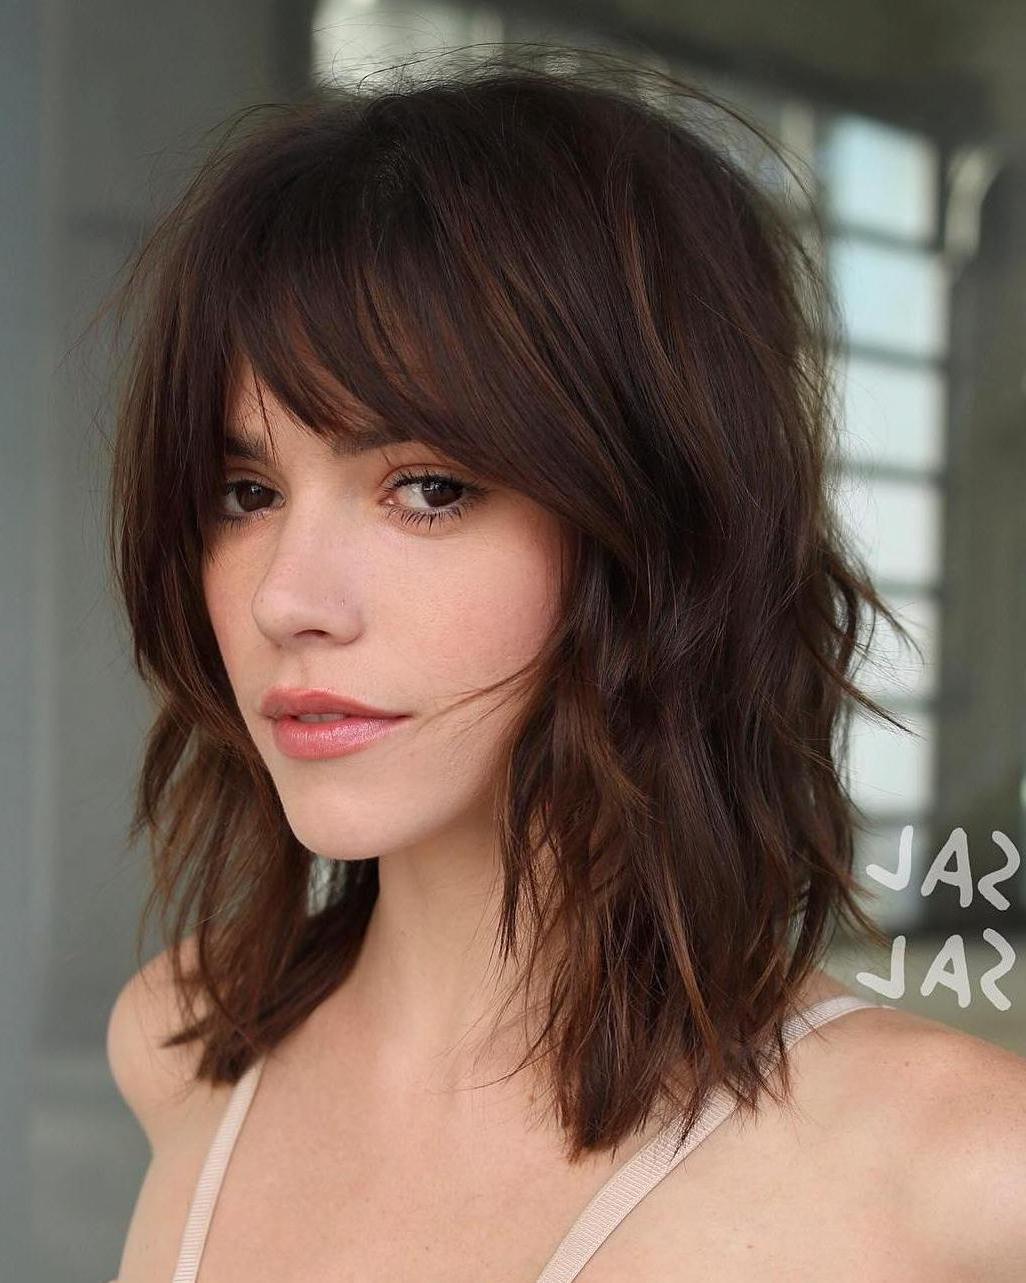 35 Killer Ways To Work Long Bob Haircuts For 2019 With Latest Wavy Long Bob Hairstyles With Bangs (Gallery 3 of 20)